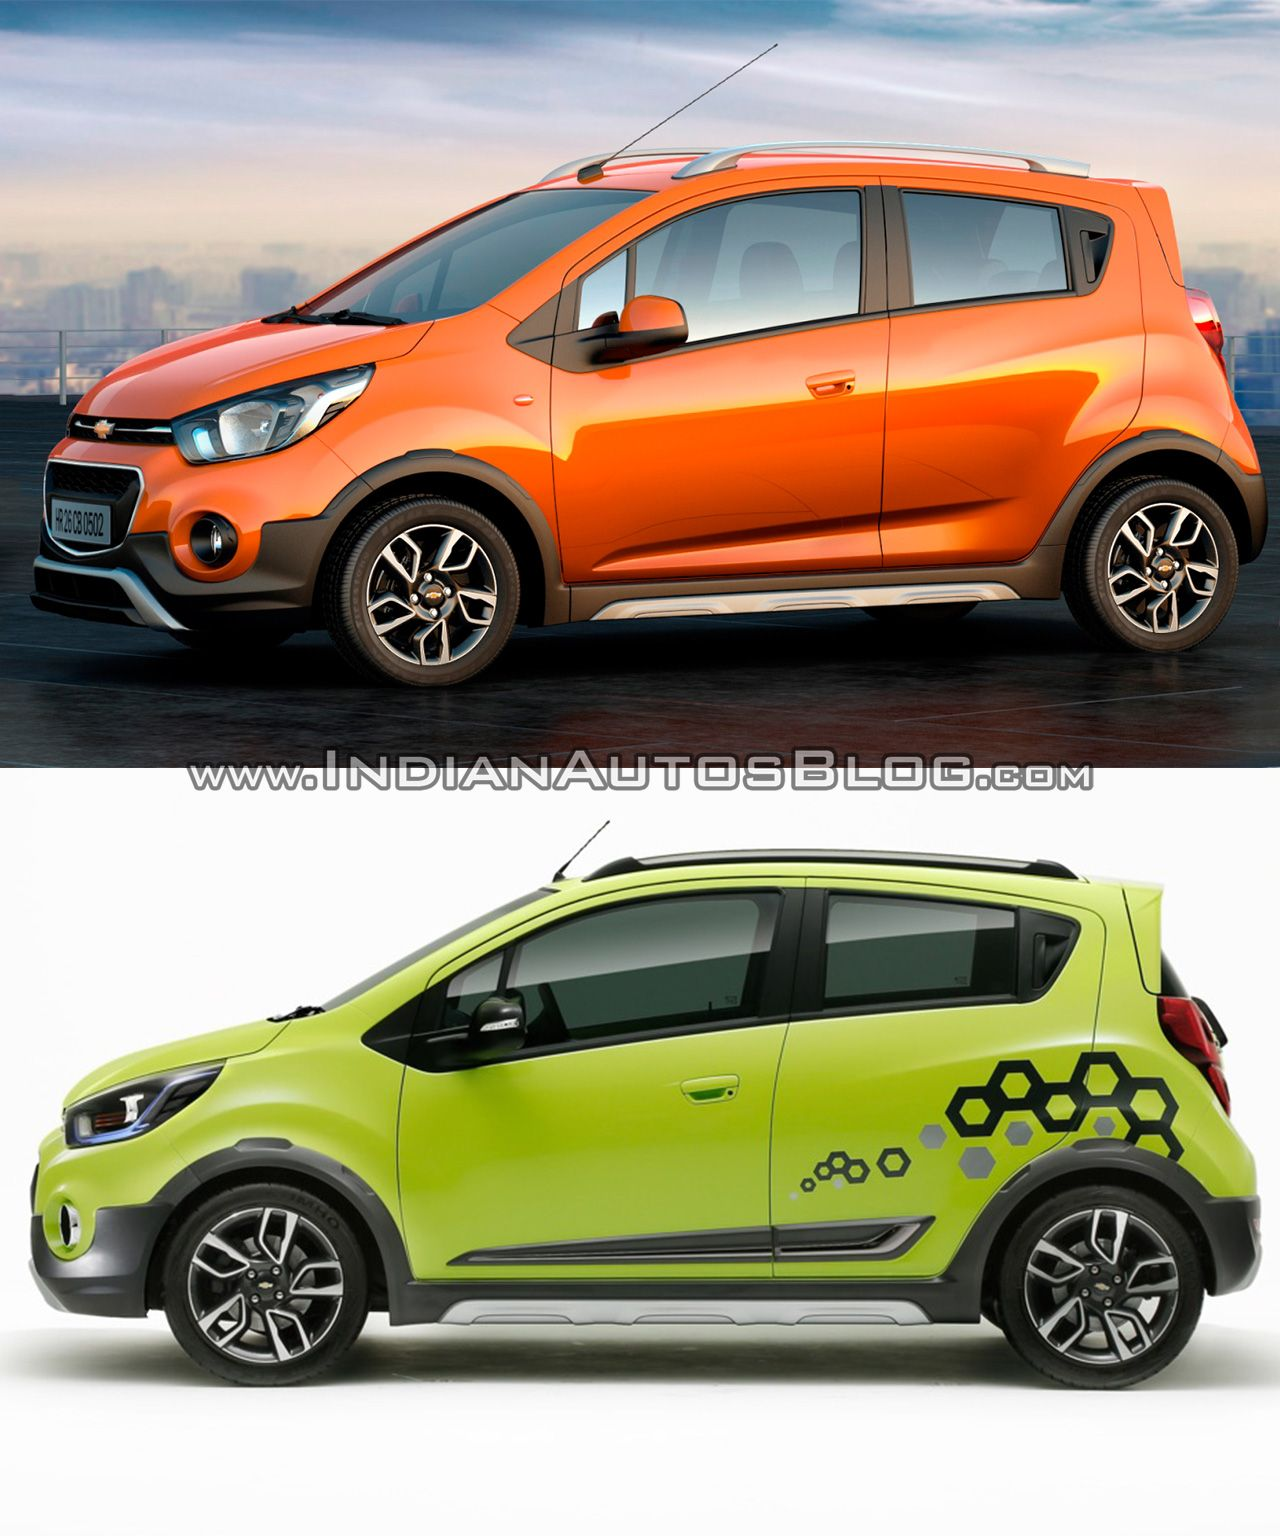 Chevrolet Beat Activ Concept Vs Reality Chevrolet Concept Beats